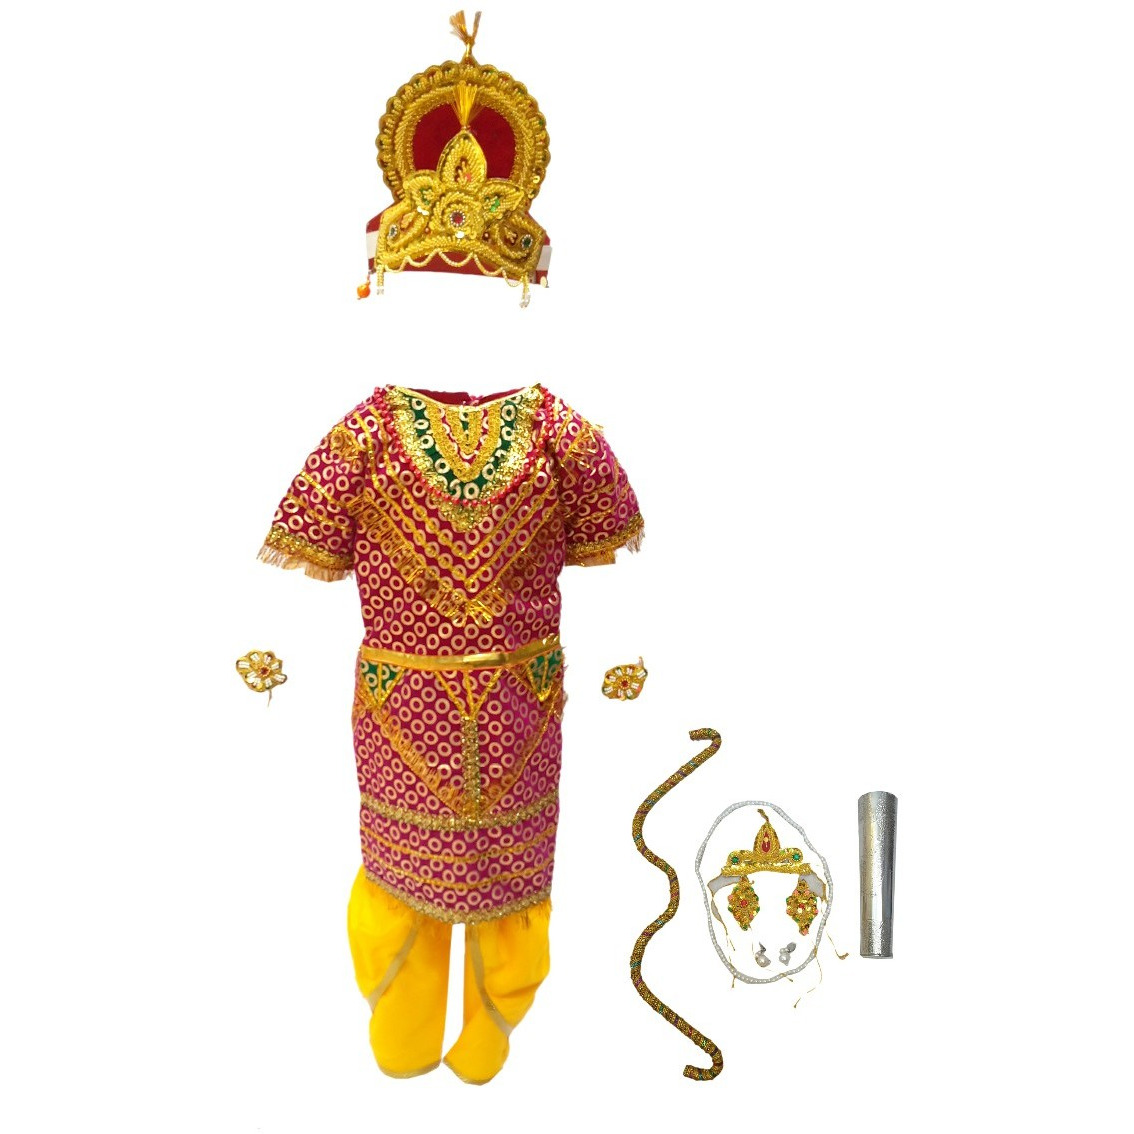 KFD Shri Ram fancy dress for kids,Ramleela/Dussehra/Mythological Character for Annual function/Theme Party/Competition/Stage Shows Dress